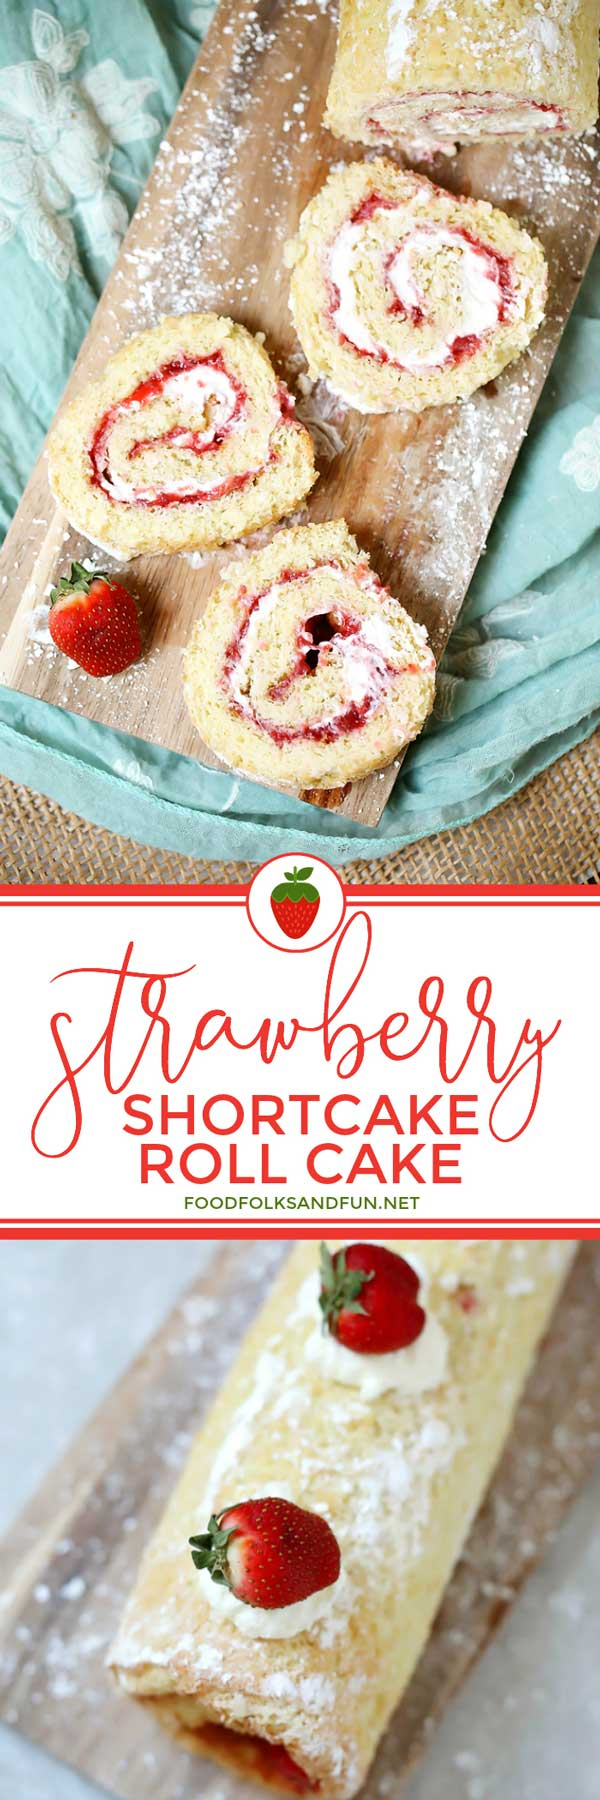 Strawberry Shortcake Roll is the perfect summer dessert. It's filled with fresh, in-season strawberries and cream. It's a show-stopper for any summer party, barbeque, holiday, or birthday! via @foodfolksandfun